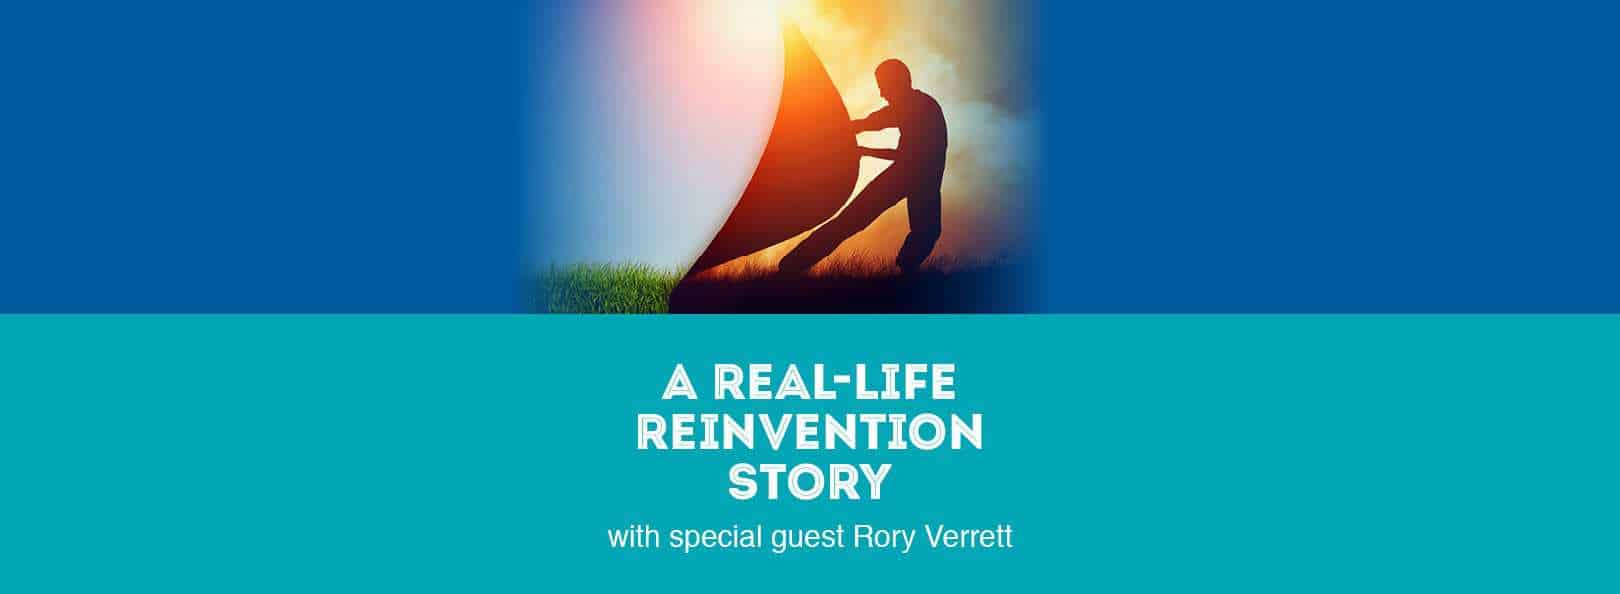 A Real-Life Reinvention Story with special guest Rory Verrett